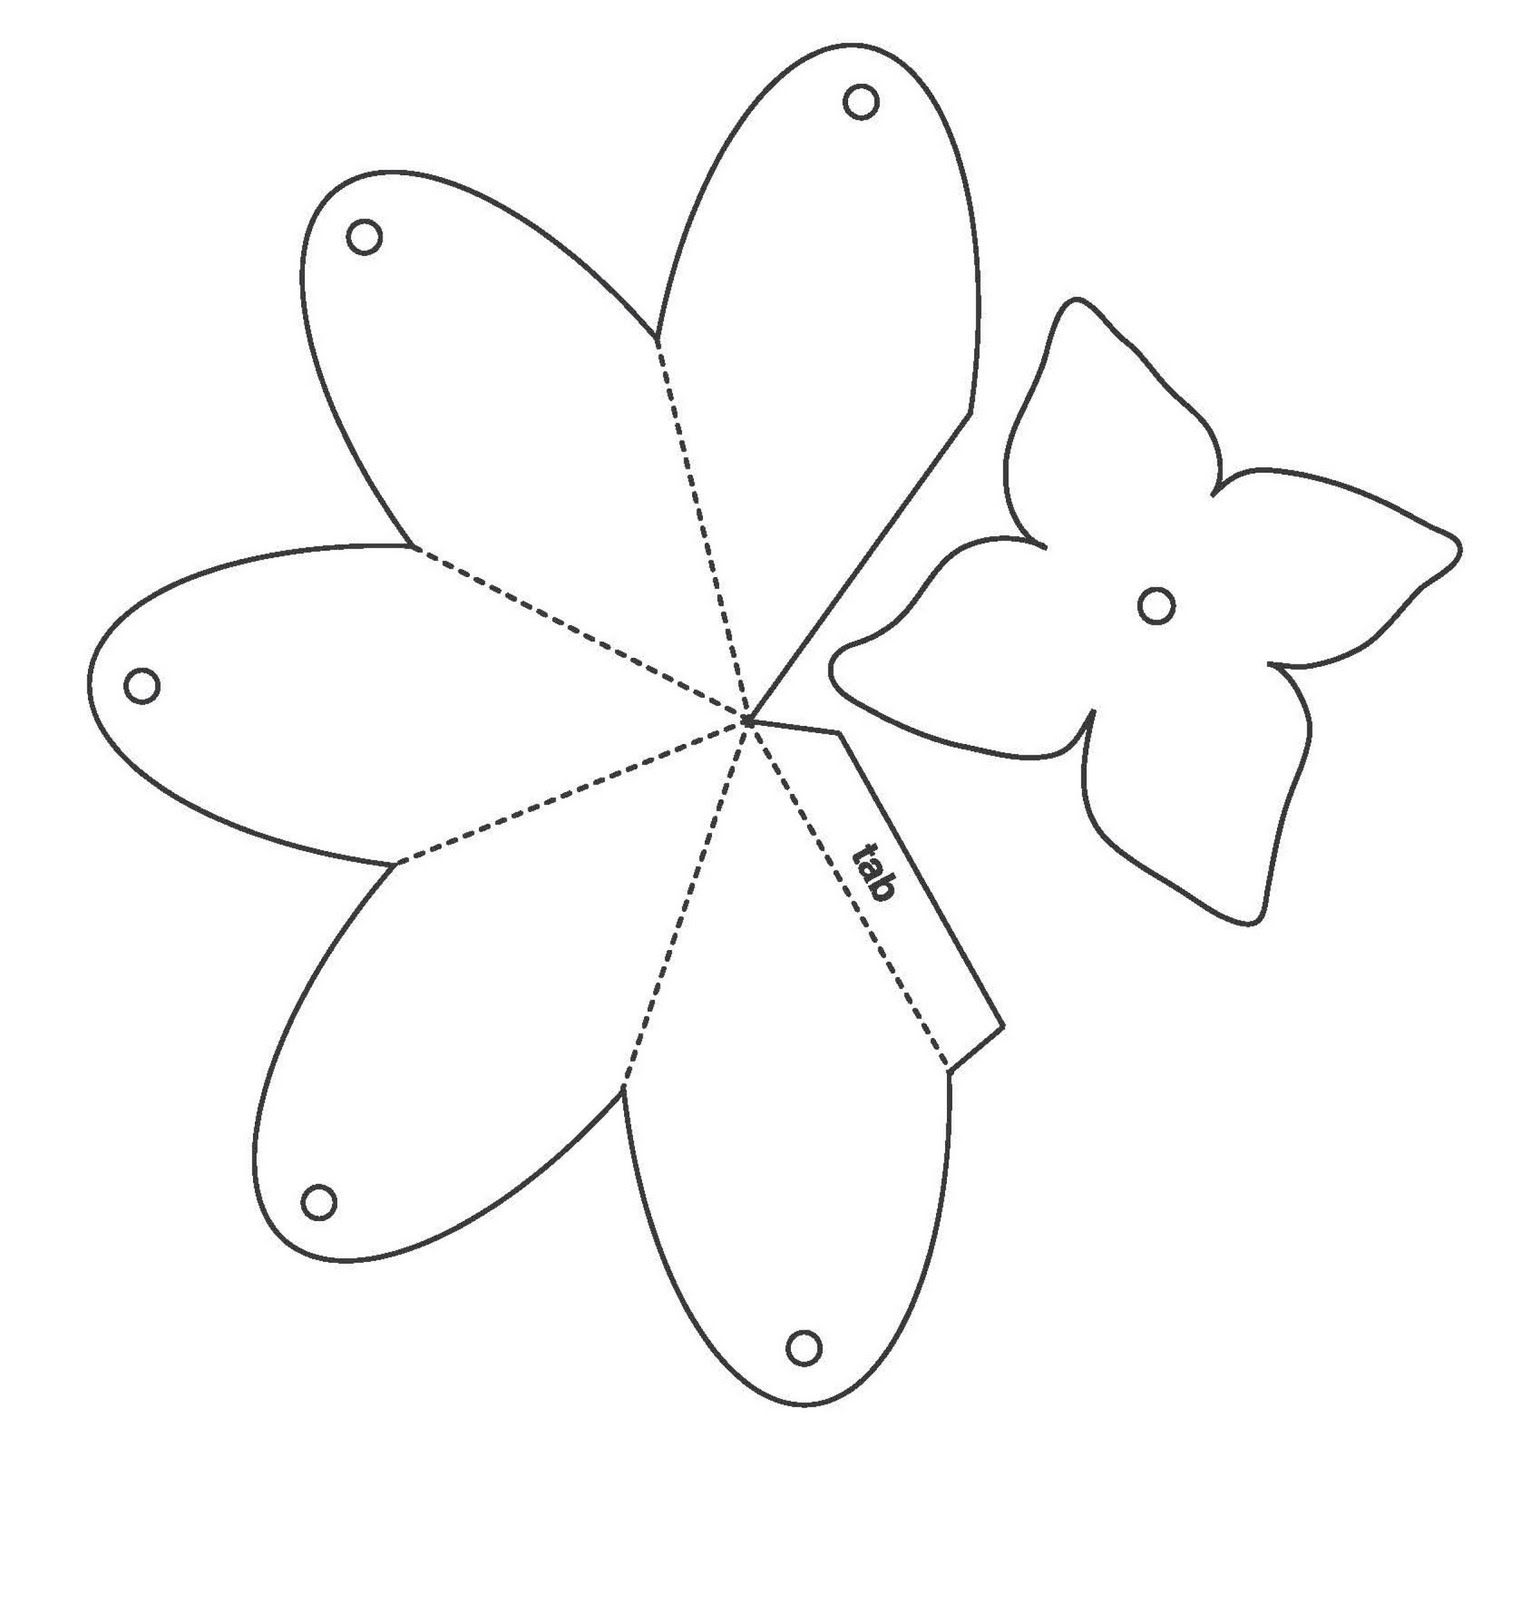 print and cut out the pattern you can adjust the size using your